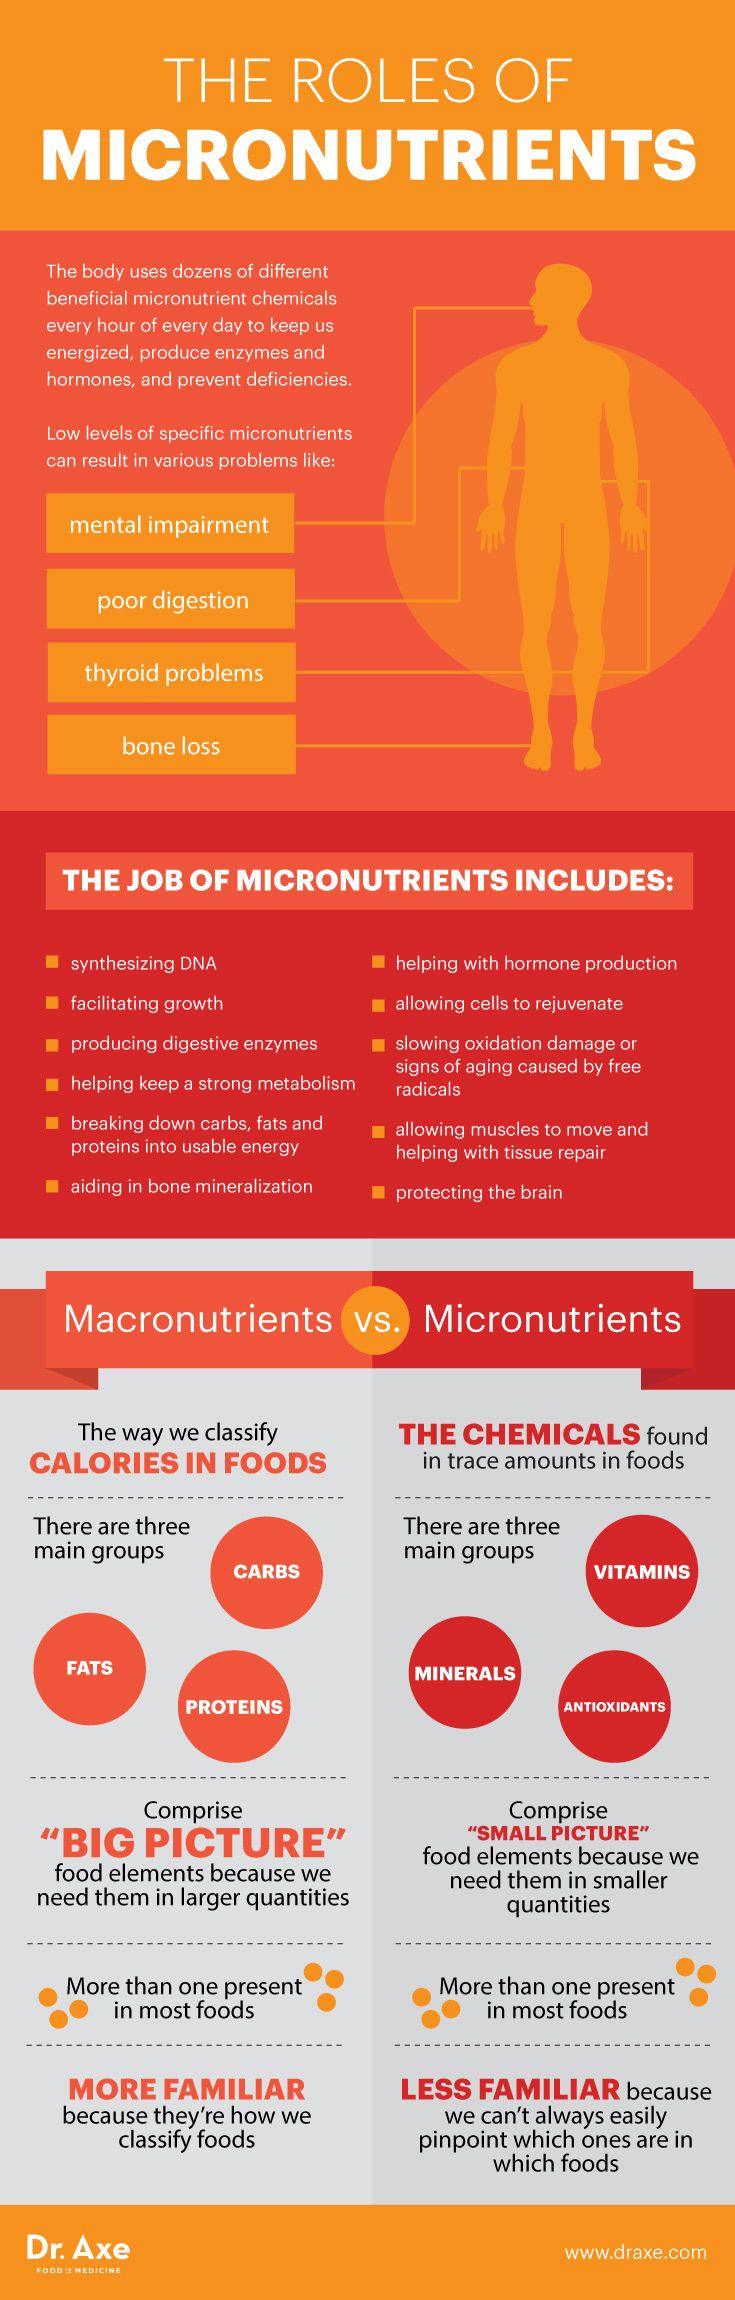 Micronutrients are essential because they protect our bodies from disease, slow the aging process and help every system in our bodies properly function. Micronutrients Prevent Disease & Fight Aging - Dr. Axe